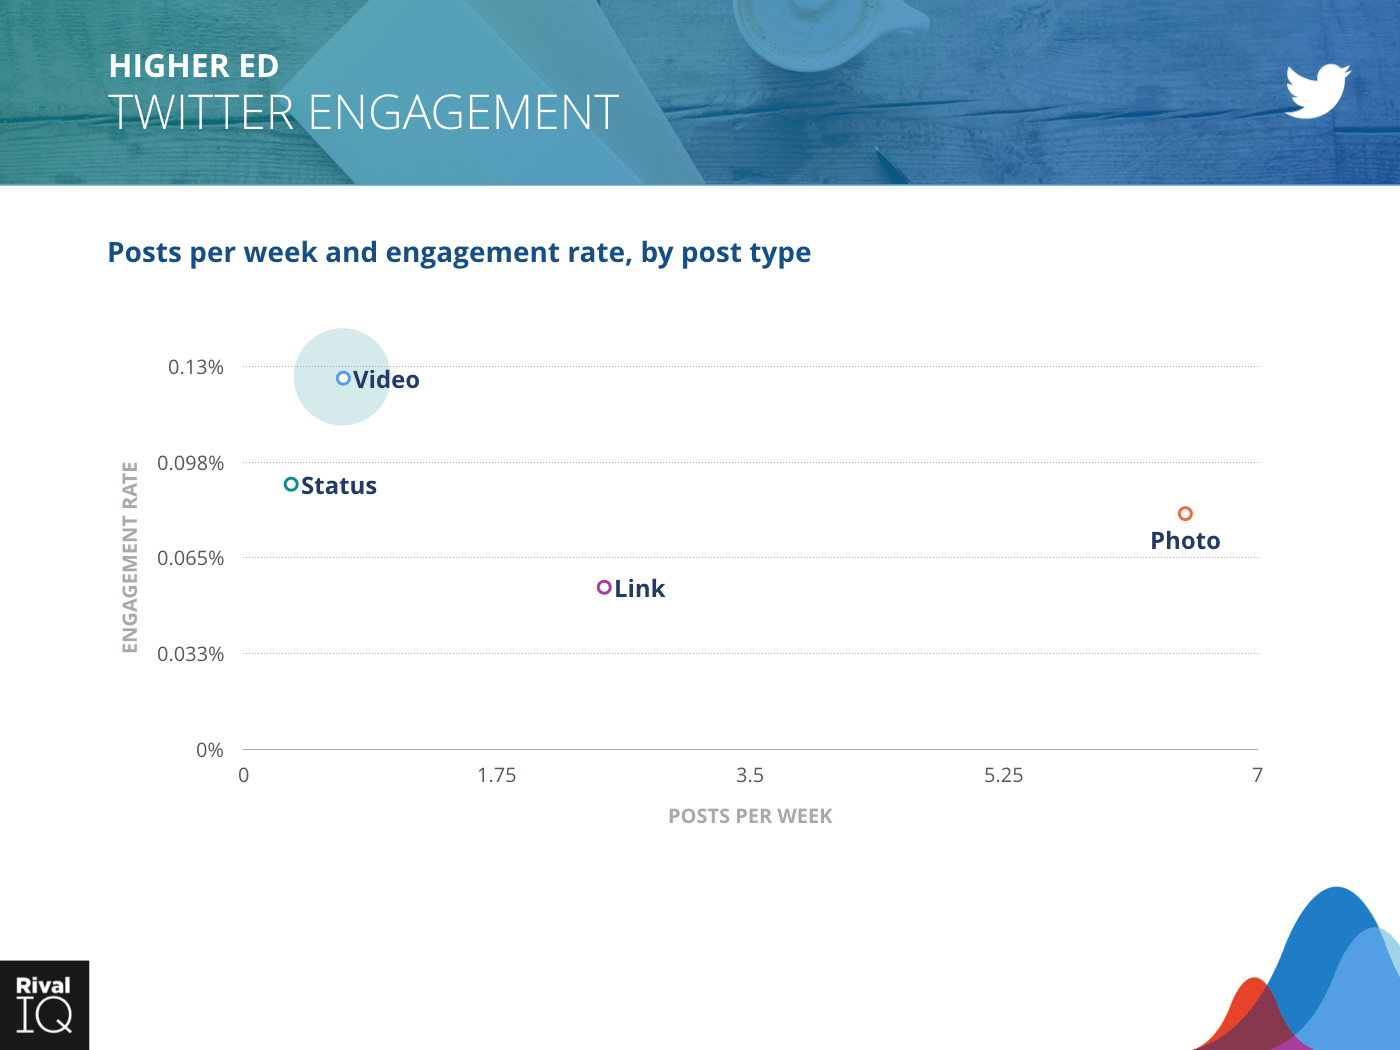 Higher Ed Industry: scatter graph, posts per week and engagement rate on Twitter by post type